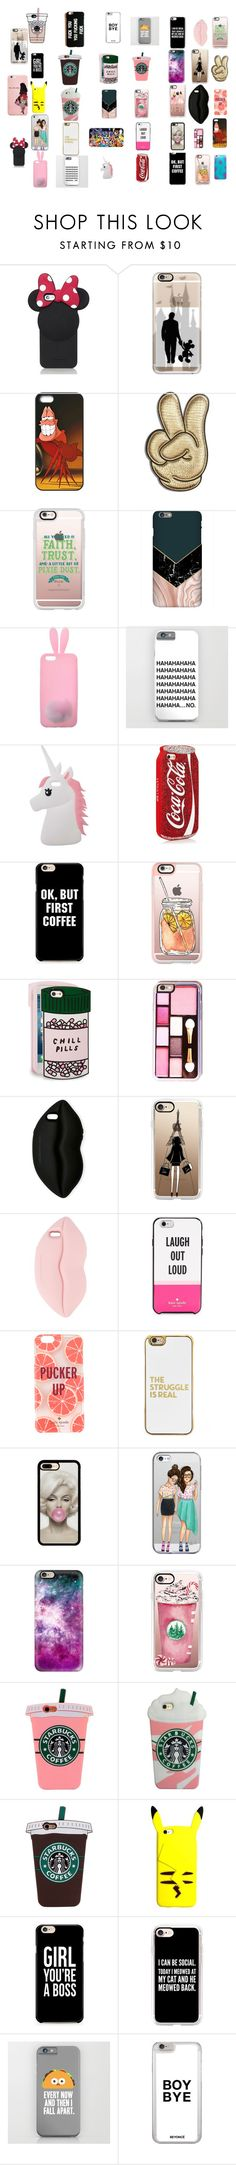 """some of  my fav phone cases!!!"" by kbentley-2004 ❤ liked on Polyvore featuring Kate Spade, Disney, Casetify, Anya Hindmarch, Miss Selfridge, ban.do, STELLA McCARTNEY and BaubleBar"